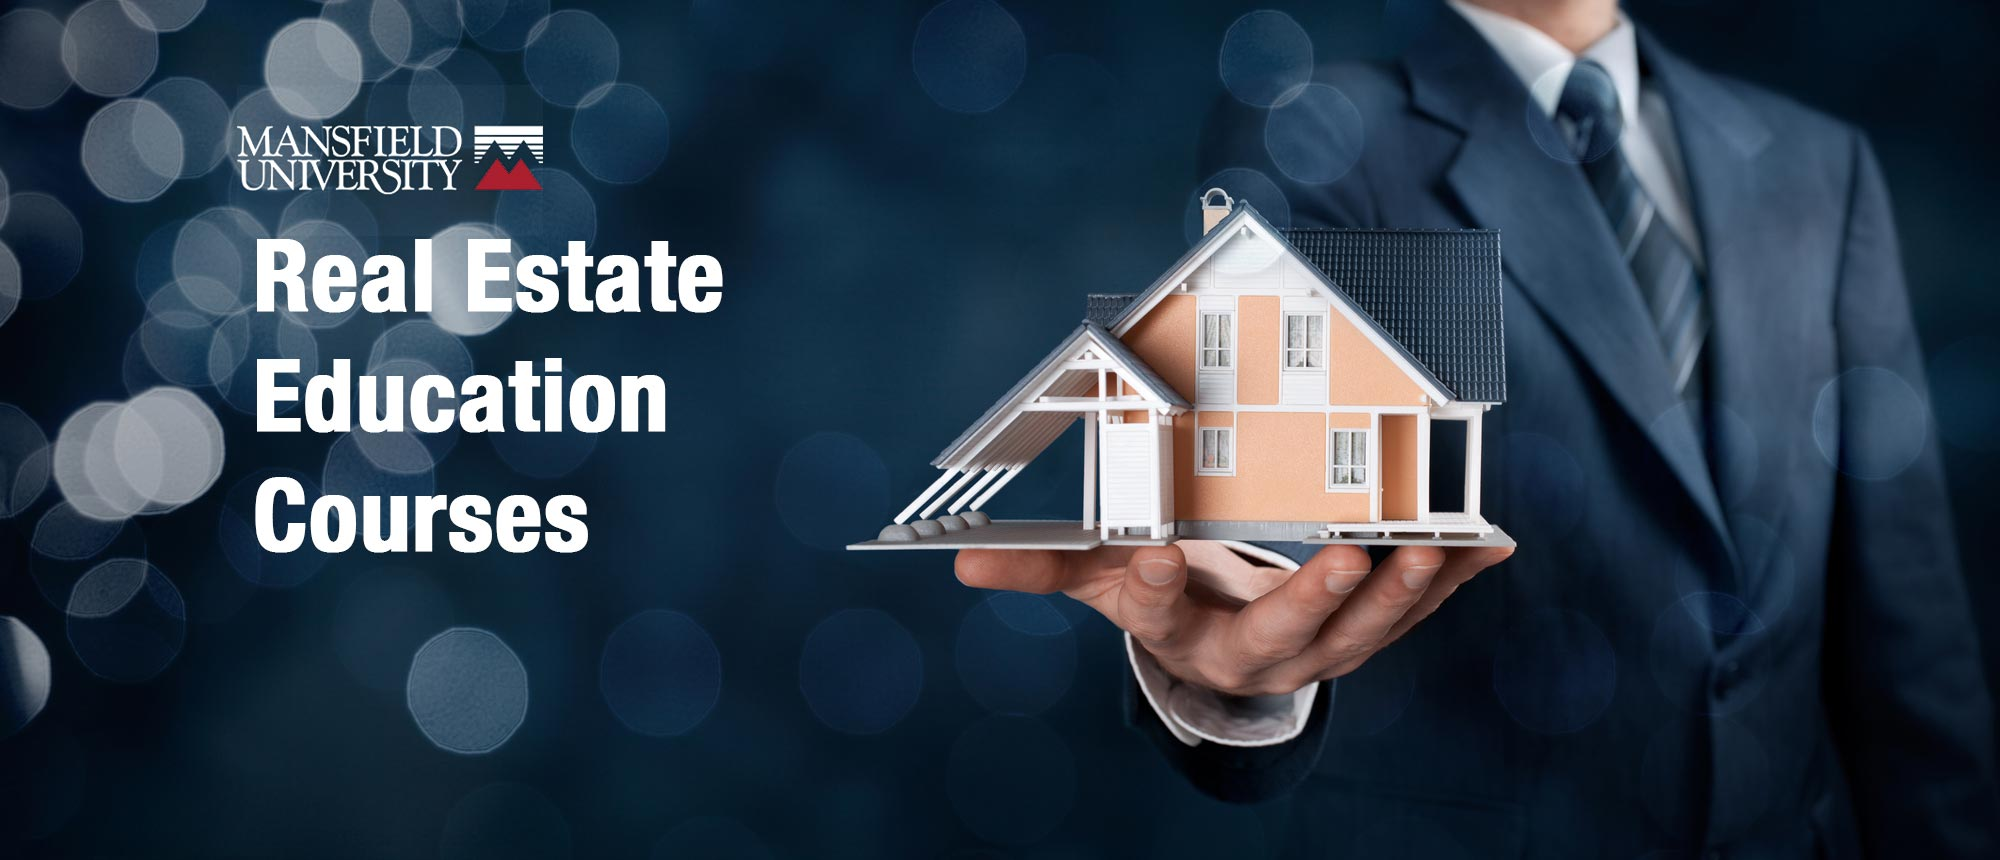 Real Estate Education Courses